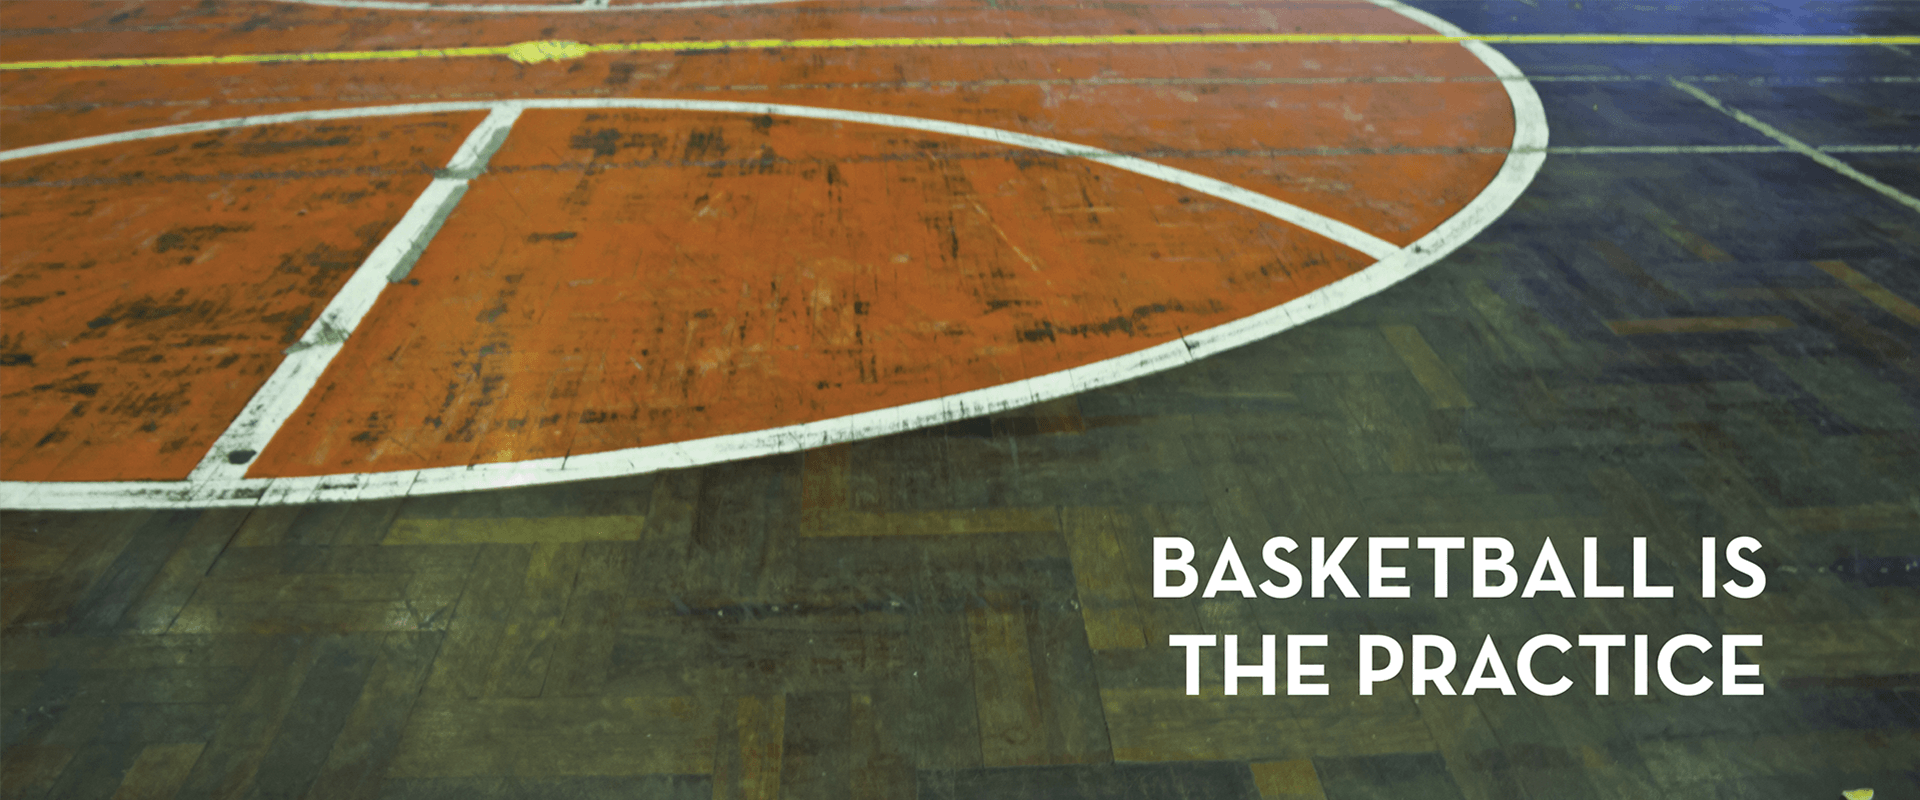 Basketball is the practice